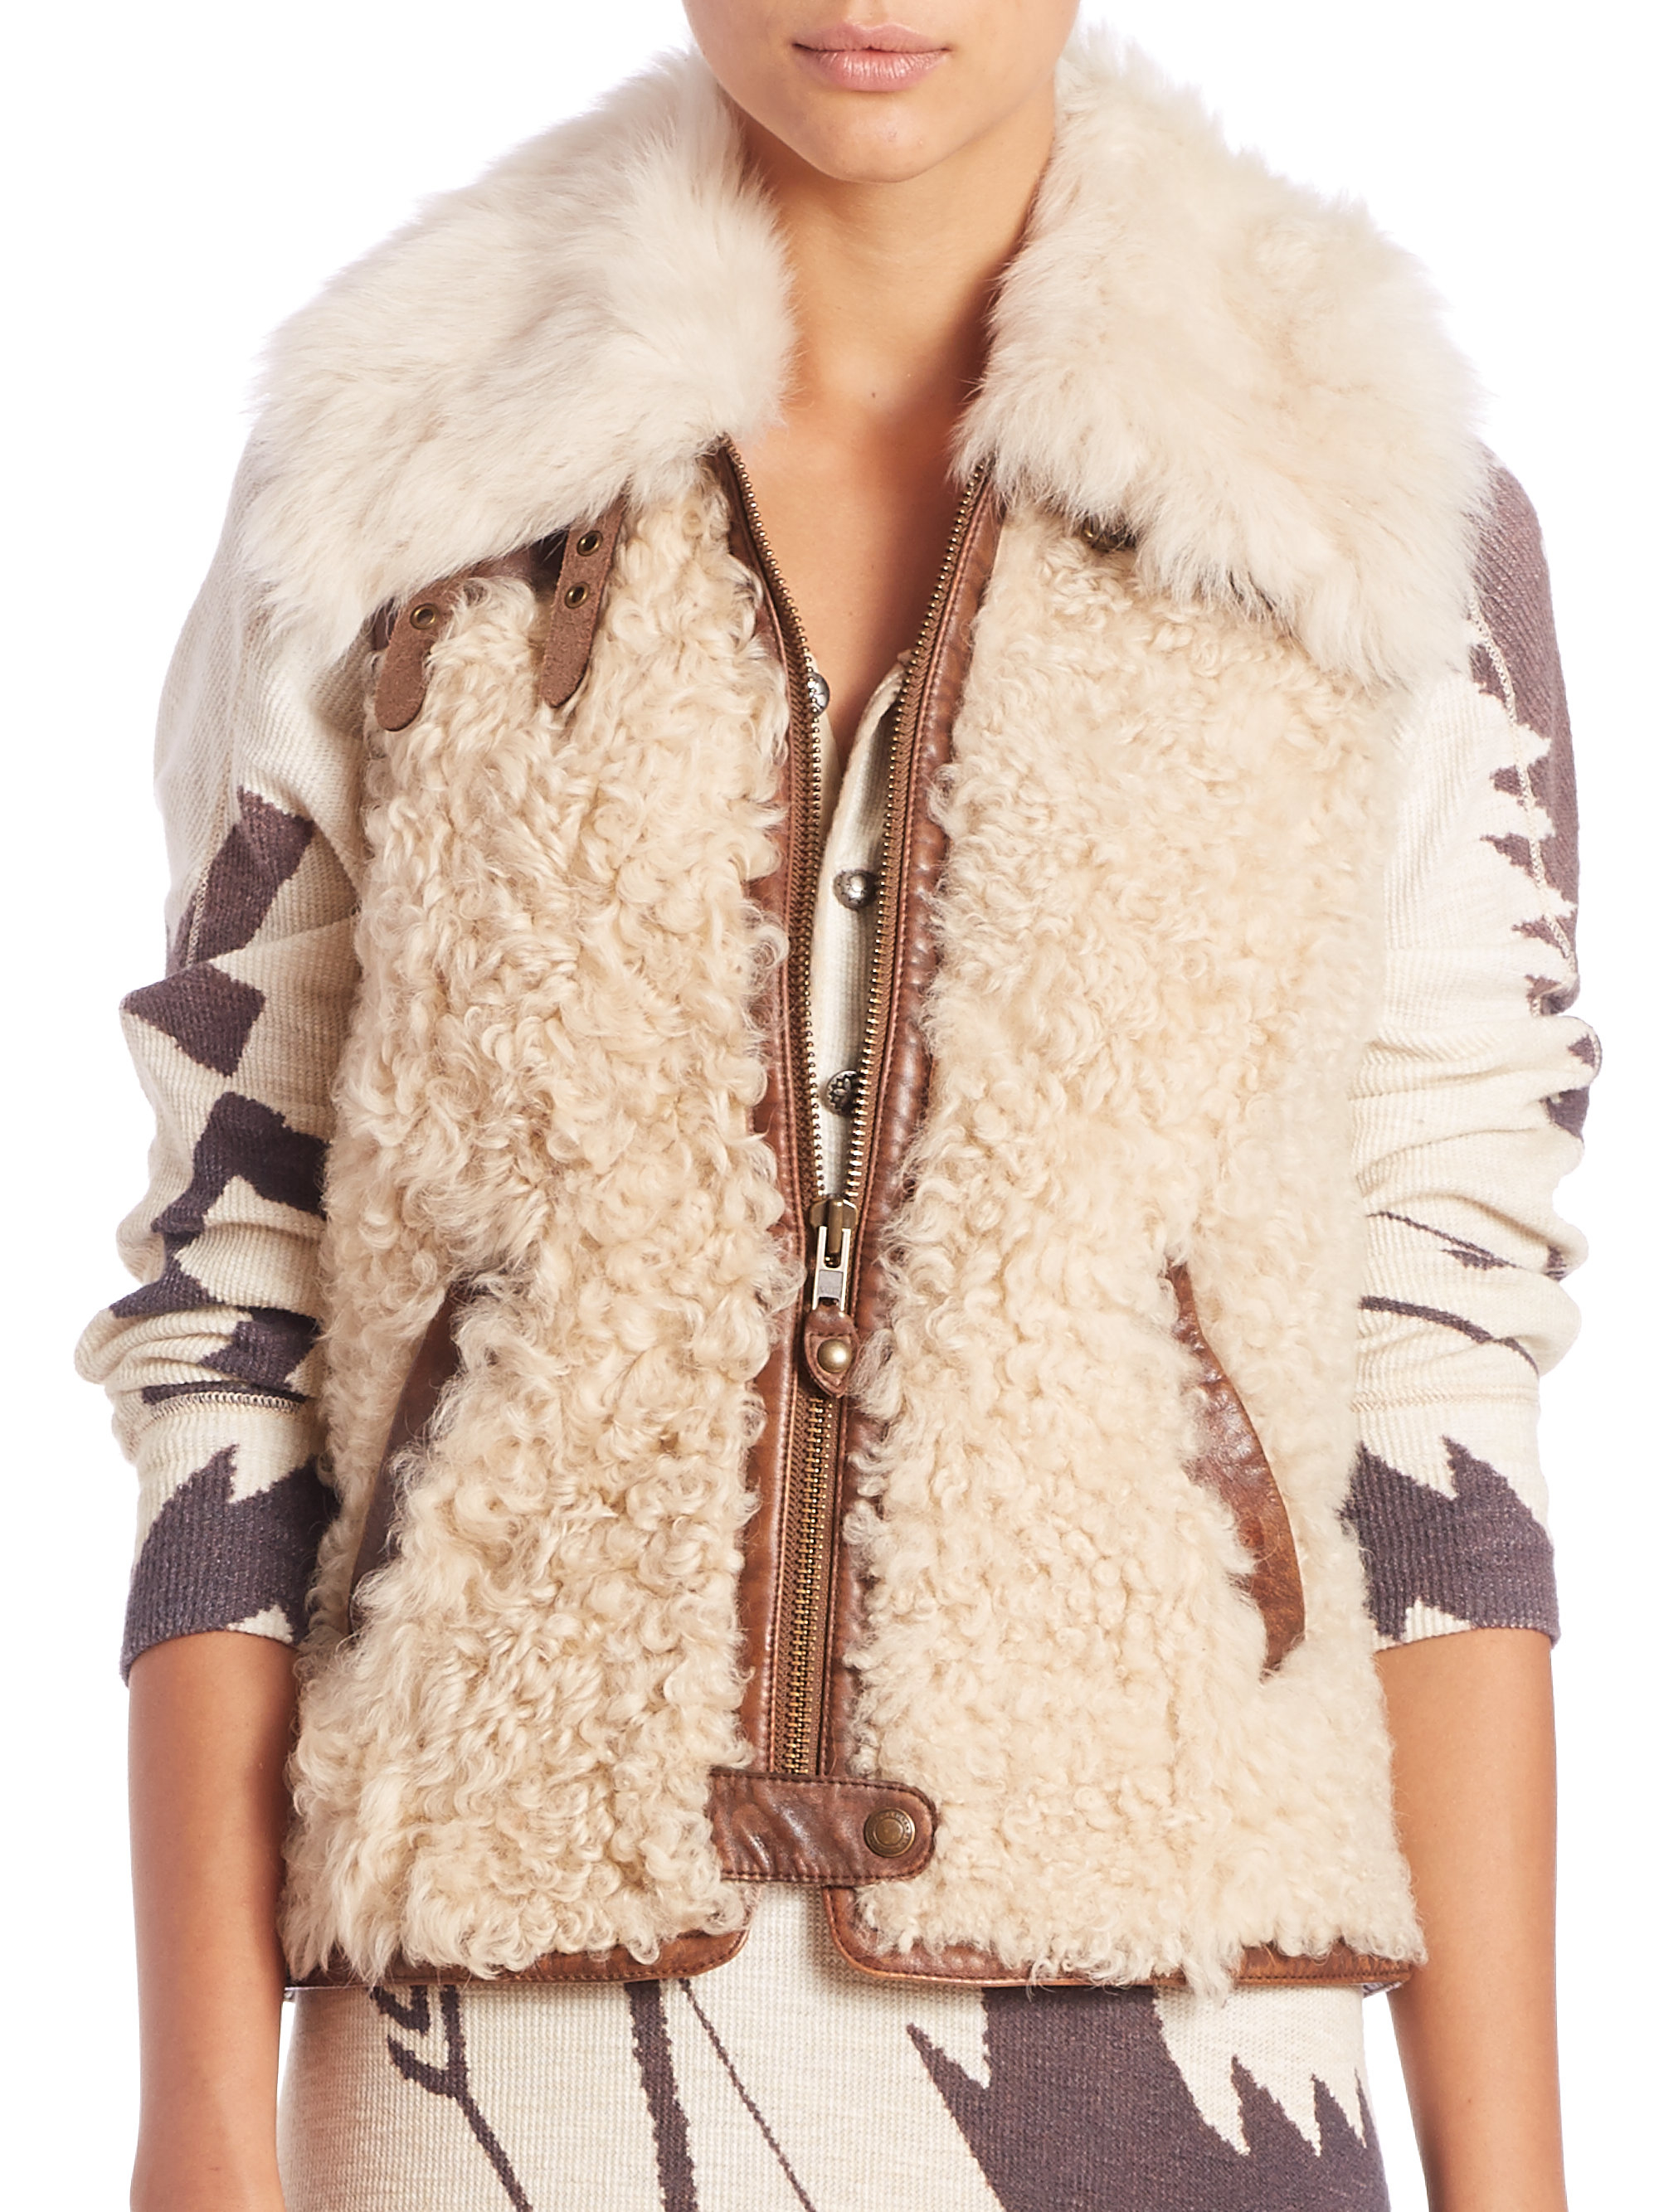 Lyst - Polo Ralph Lauren Shearling Leather-trimmed Vest in Natural f894f87a25de3